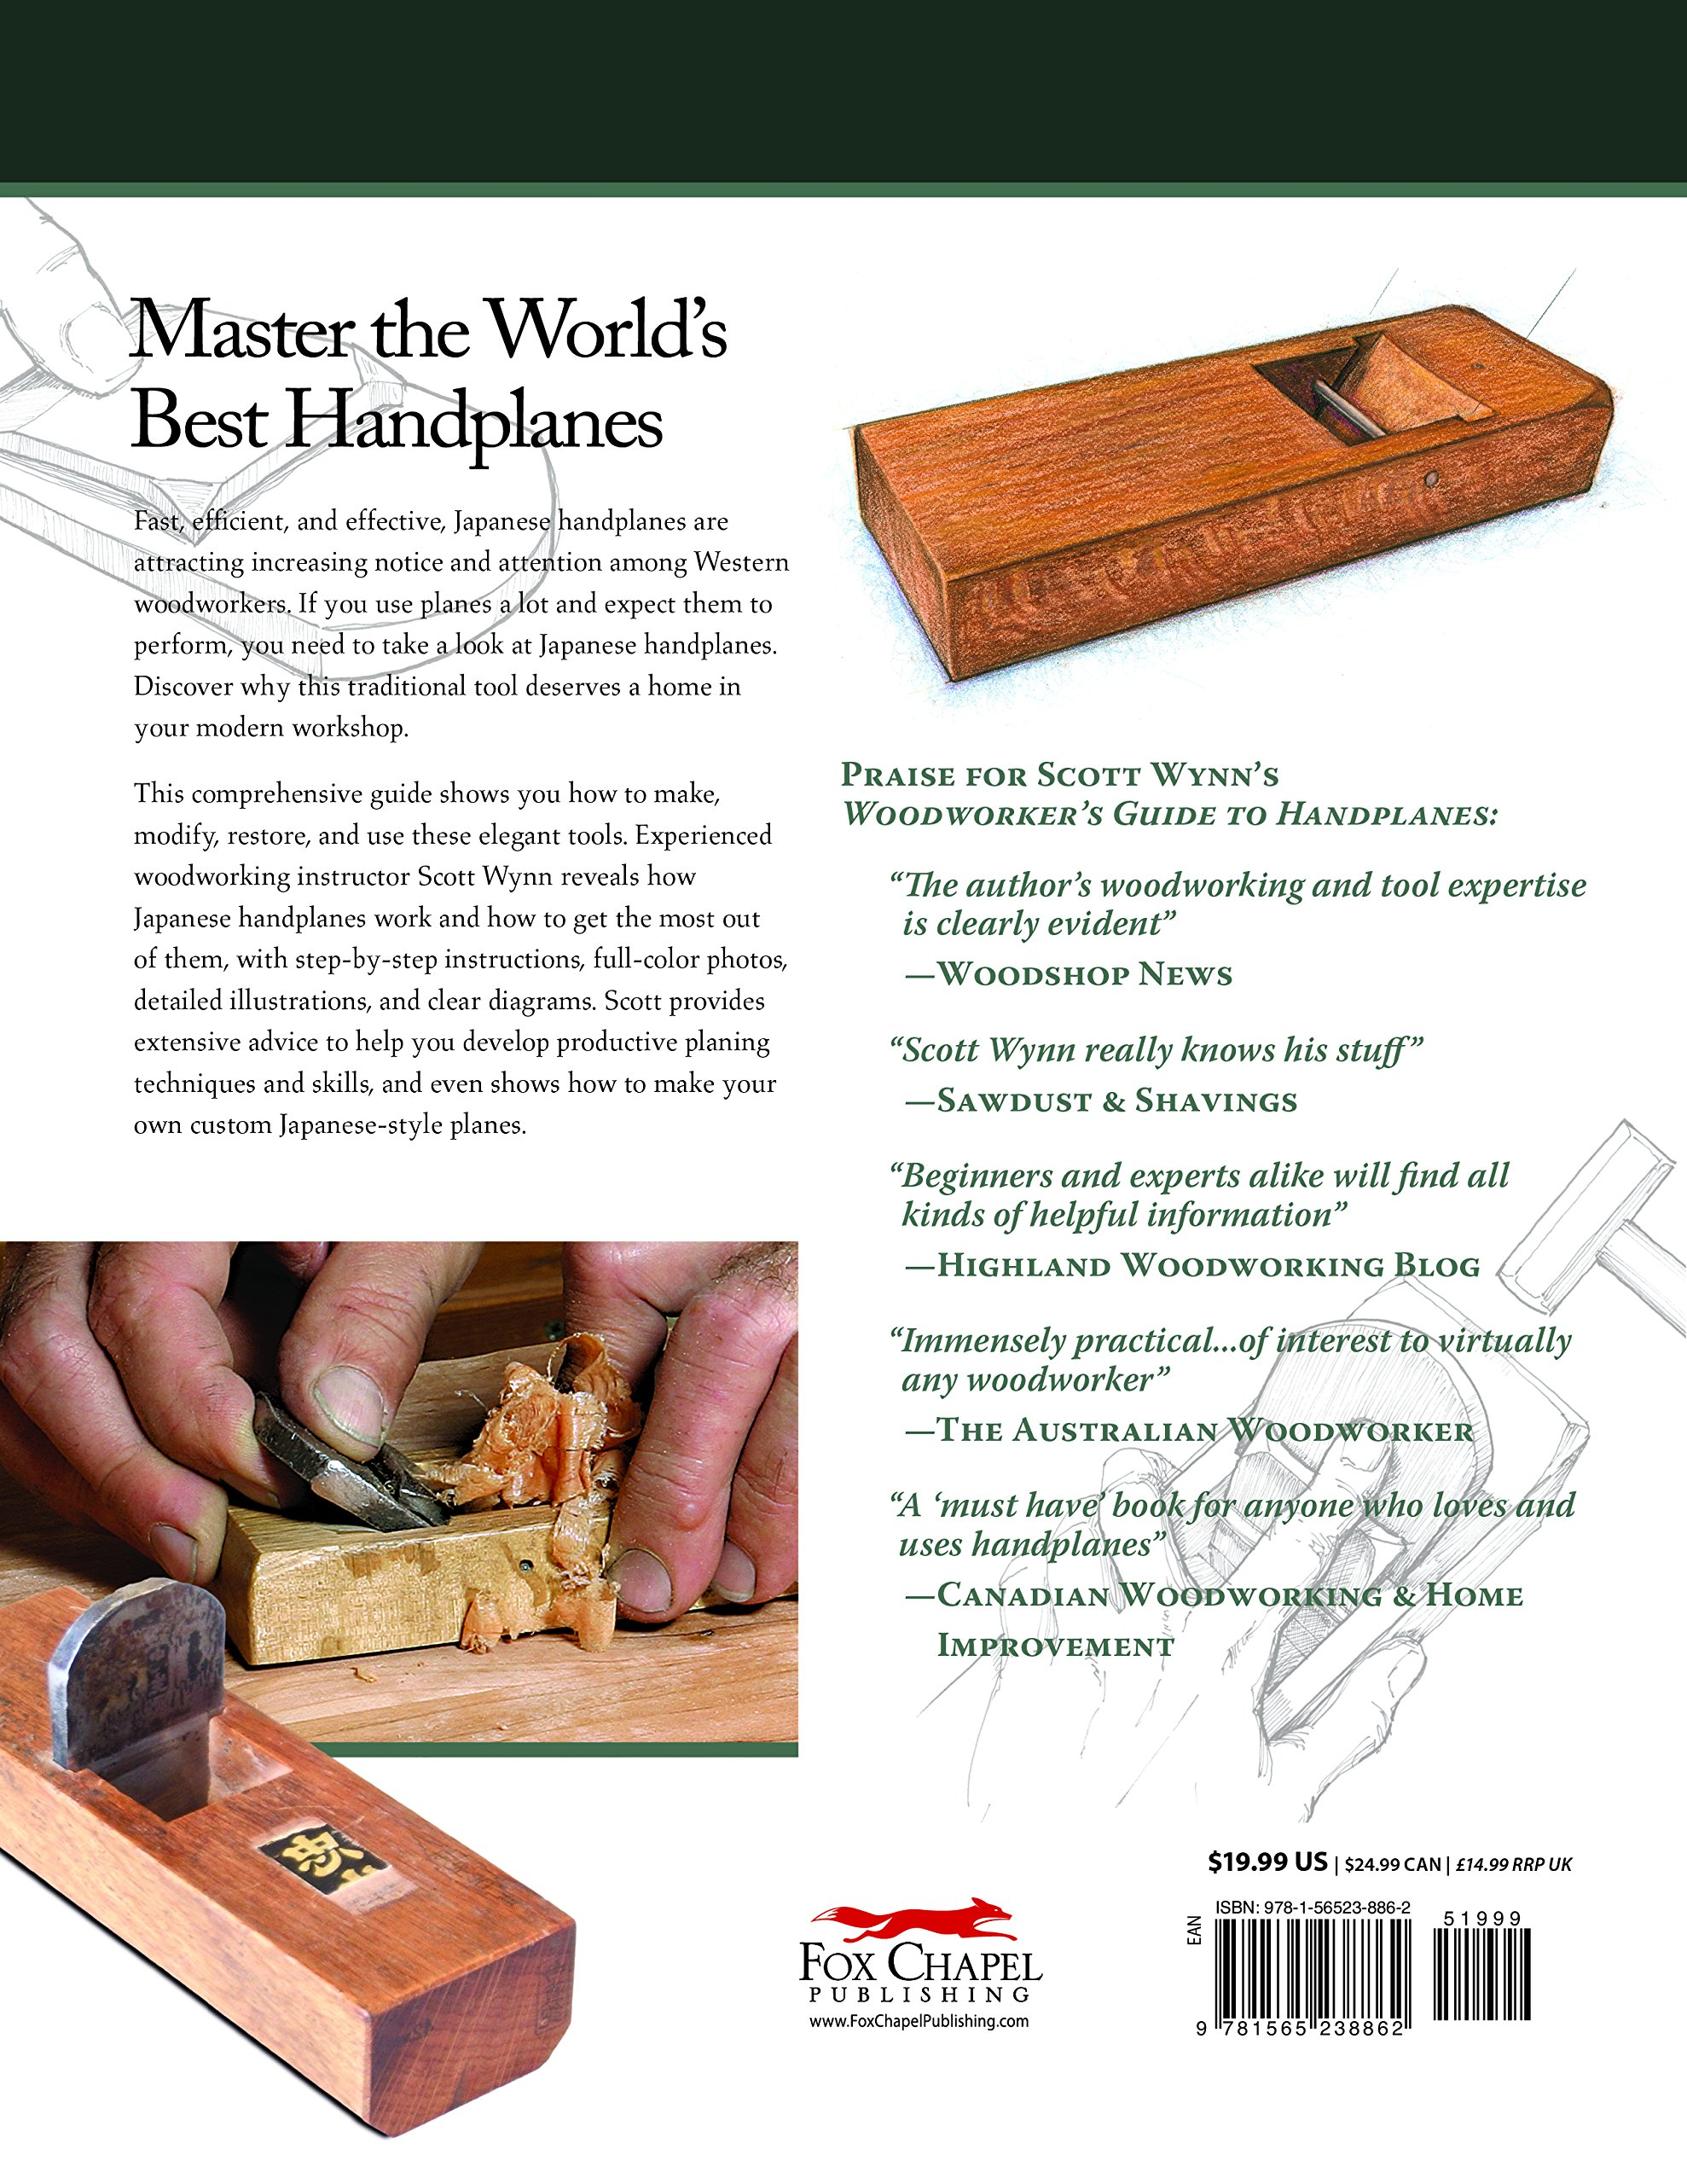 Discovering Japanese Handplanes: Why This Traditional Tool Belongs in Your Modern Workshop by Fox Chapel Publishing (Image #2)